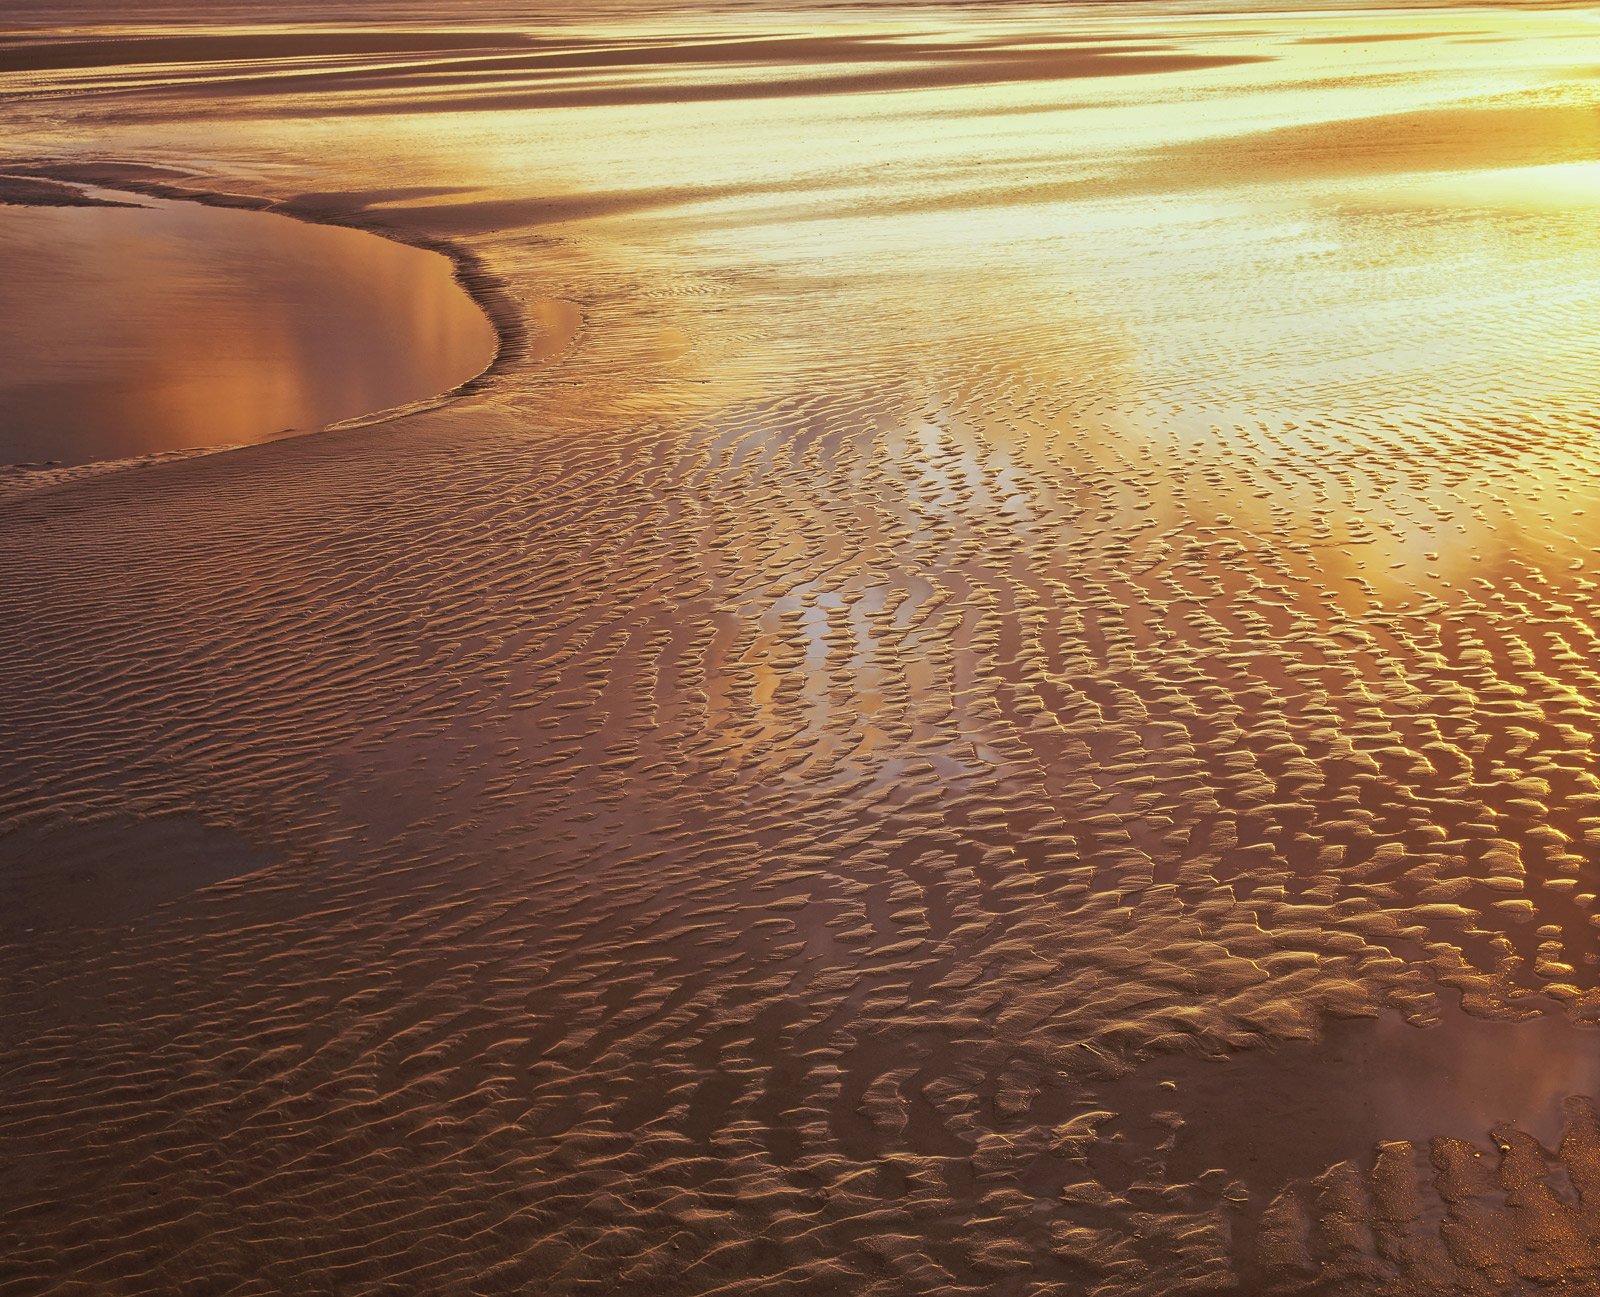 A perfectly beautiful stippled and patterned section of Findhorn Bay reflecting a golden sunset onto its still surface in a most...